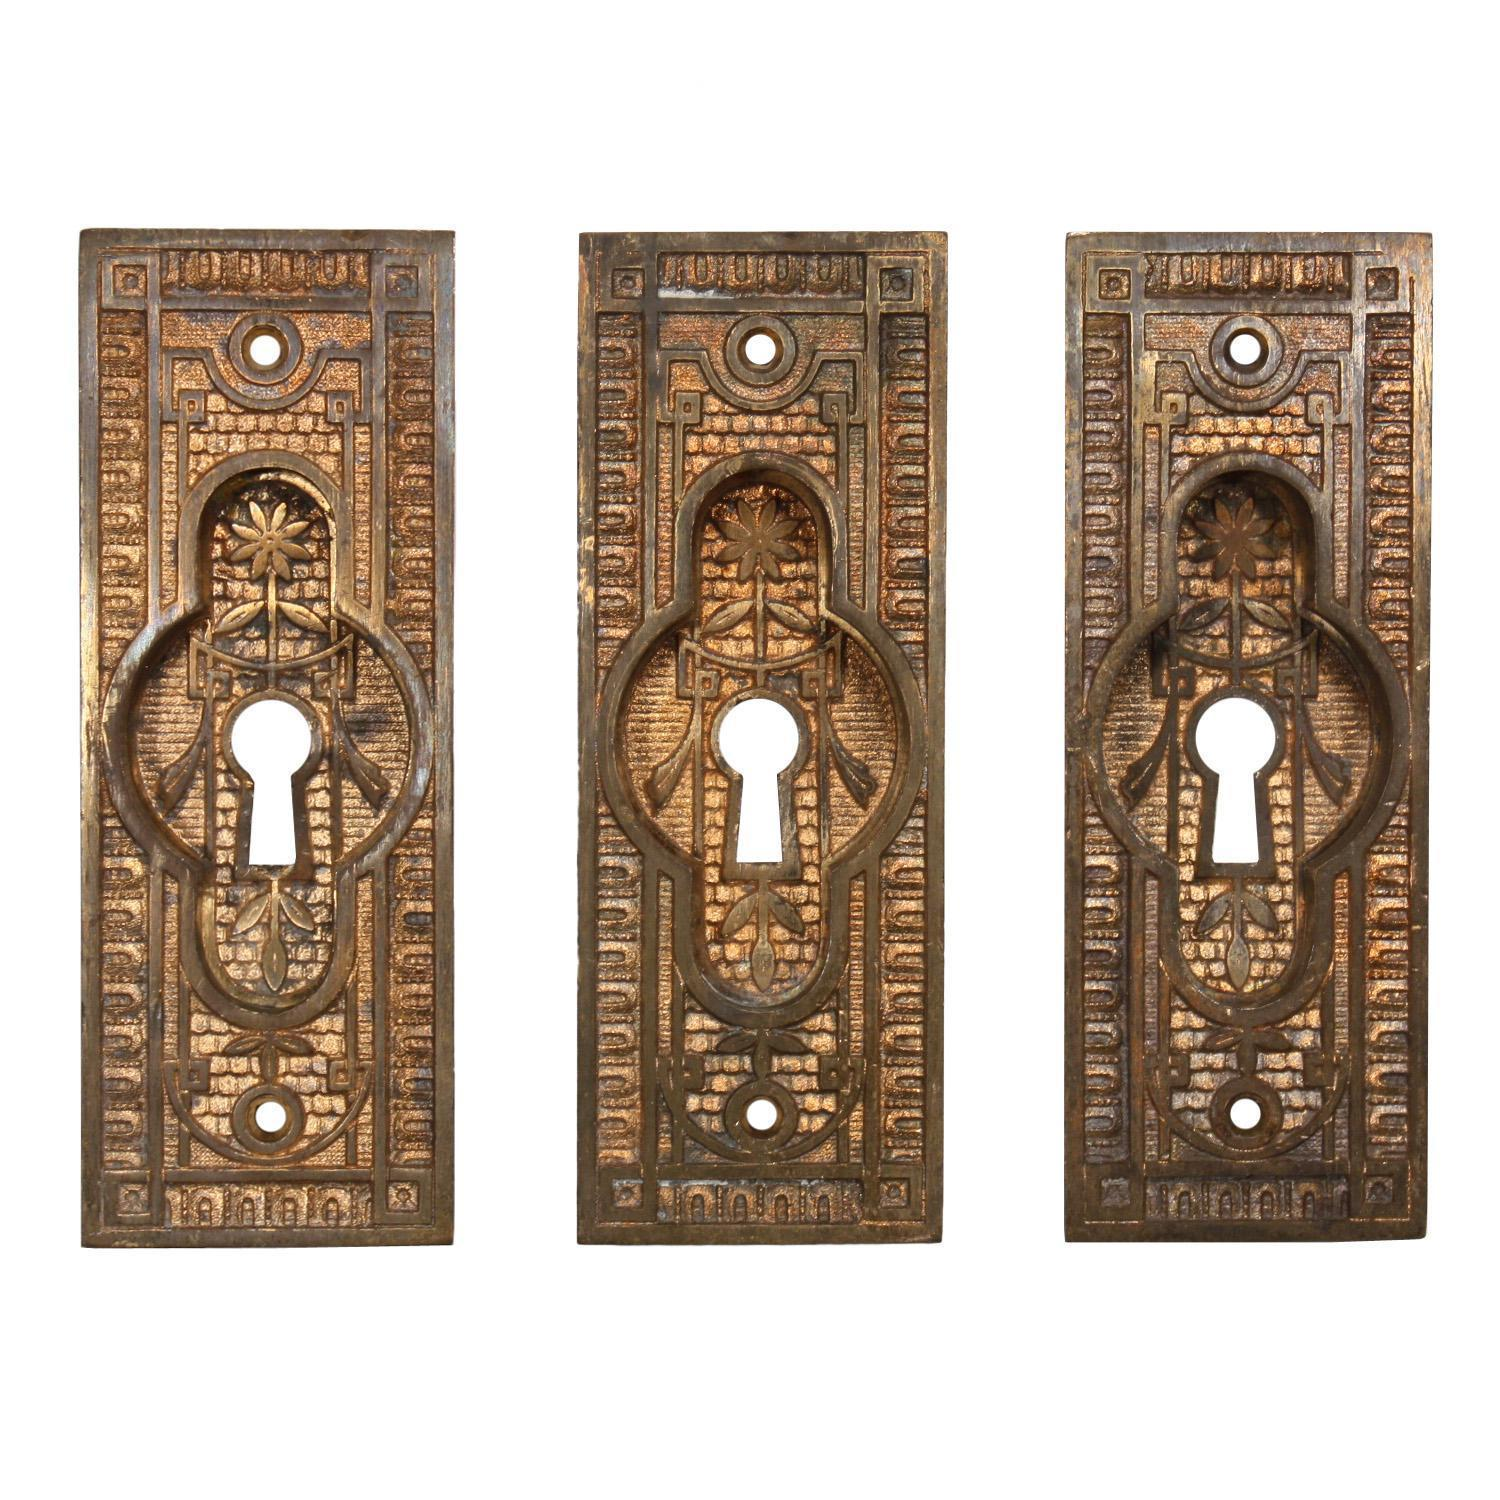 Delightful Antique Eastlake Cast Bronze Pocket Door Plates, Late 19th Century